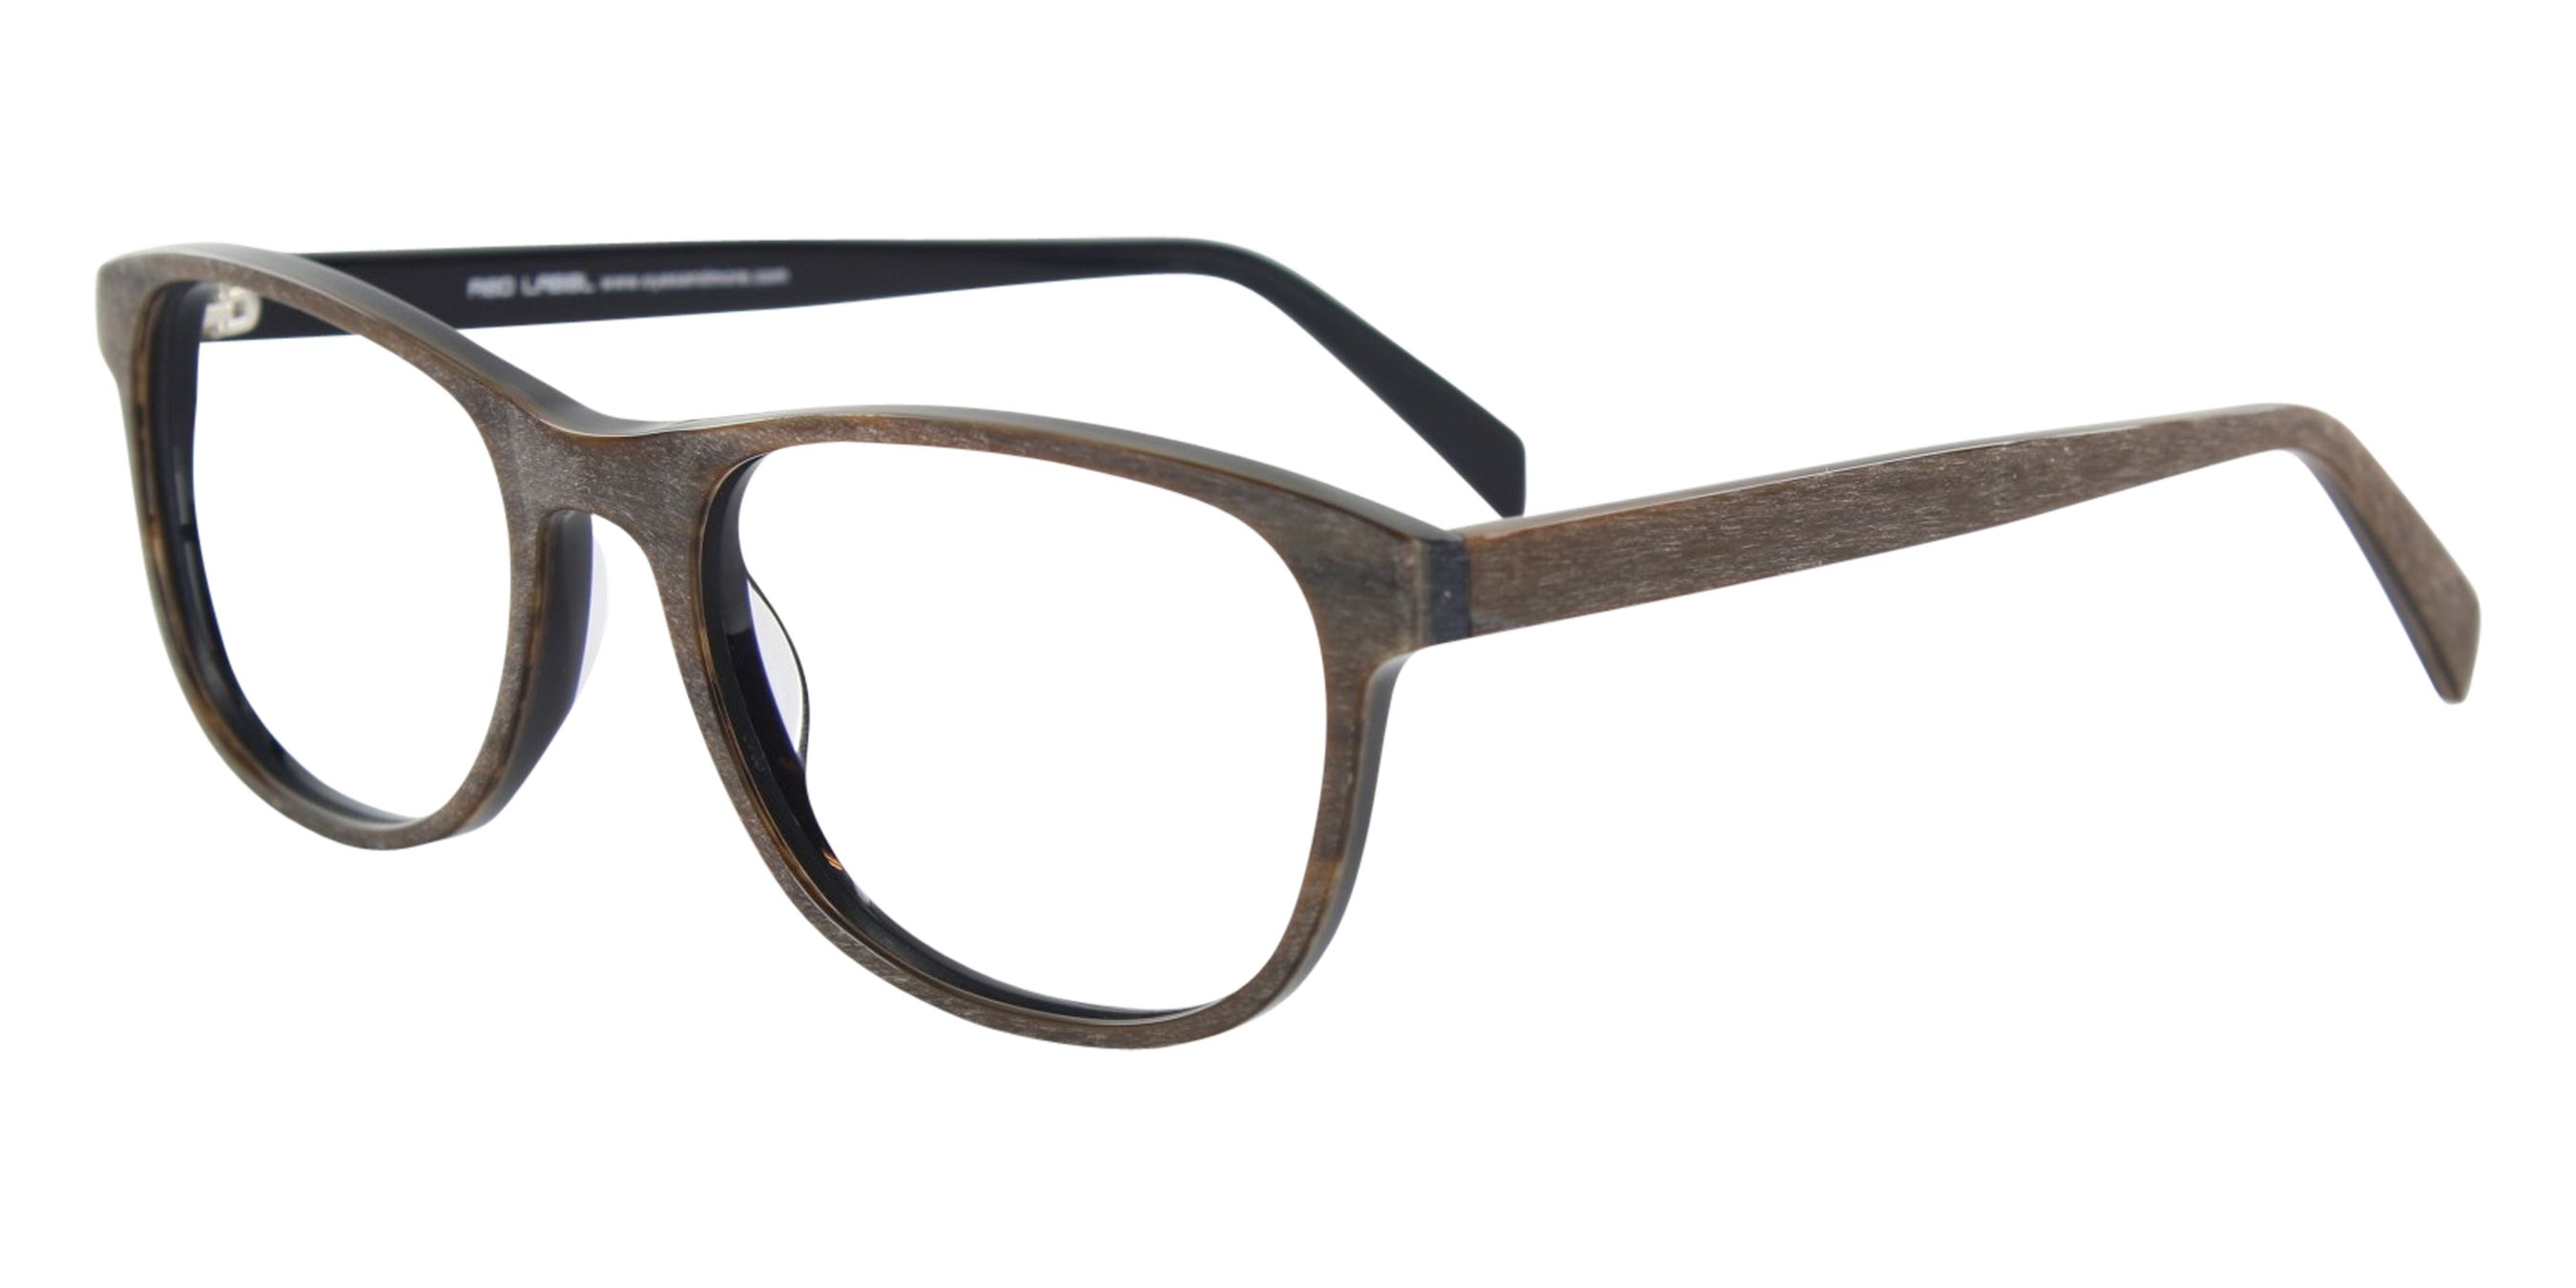 ARTUS Brille Brown für Herren | eyes + more